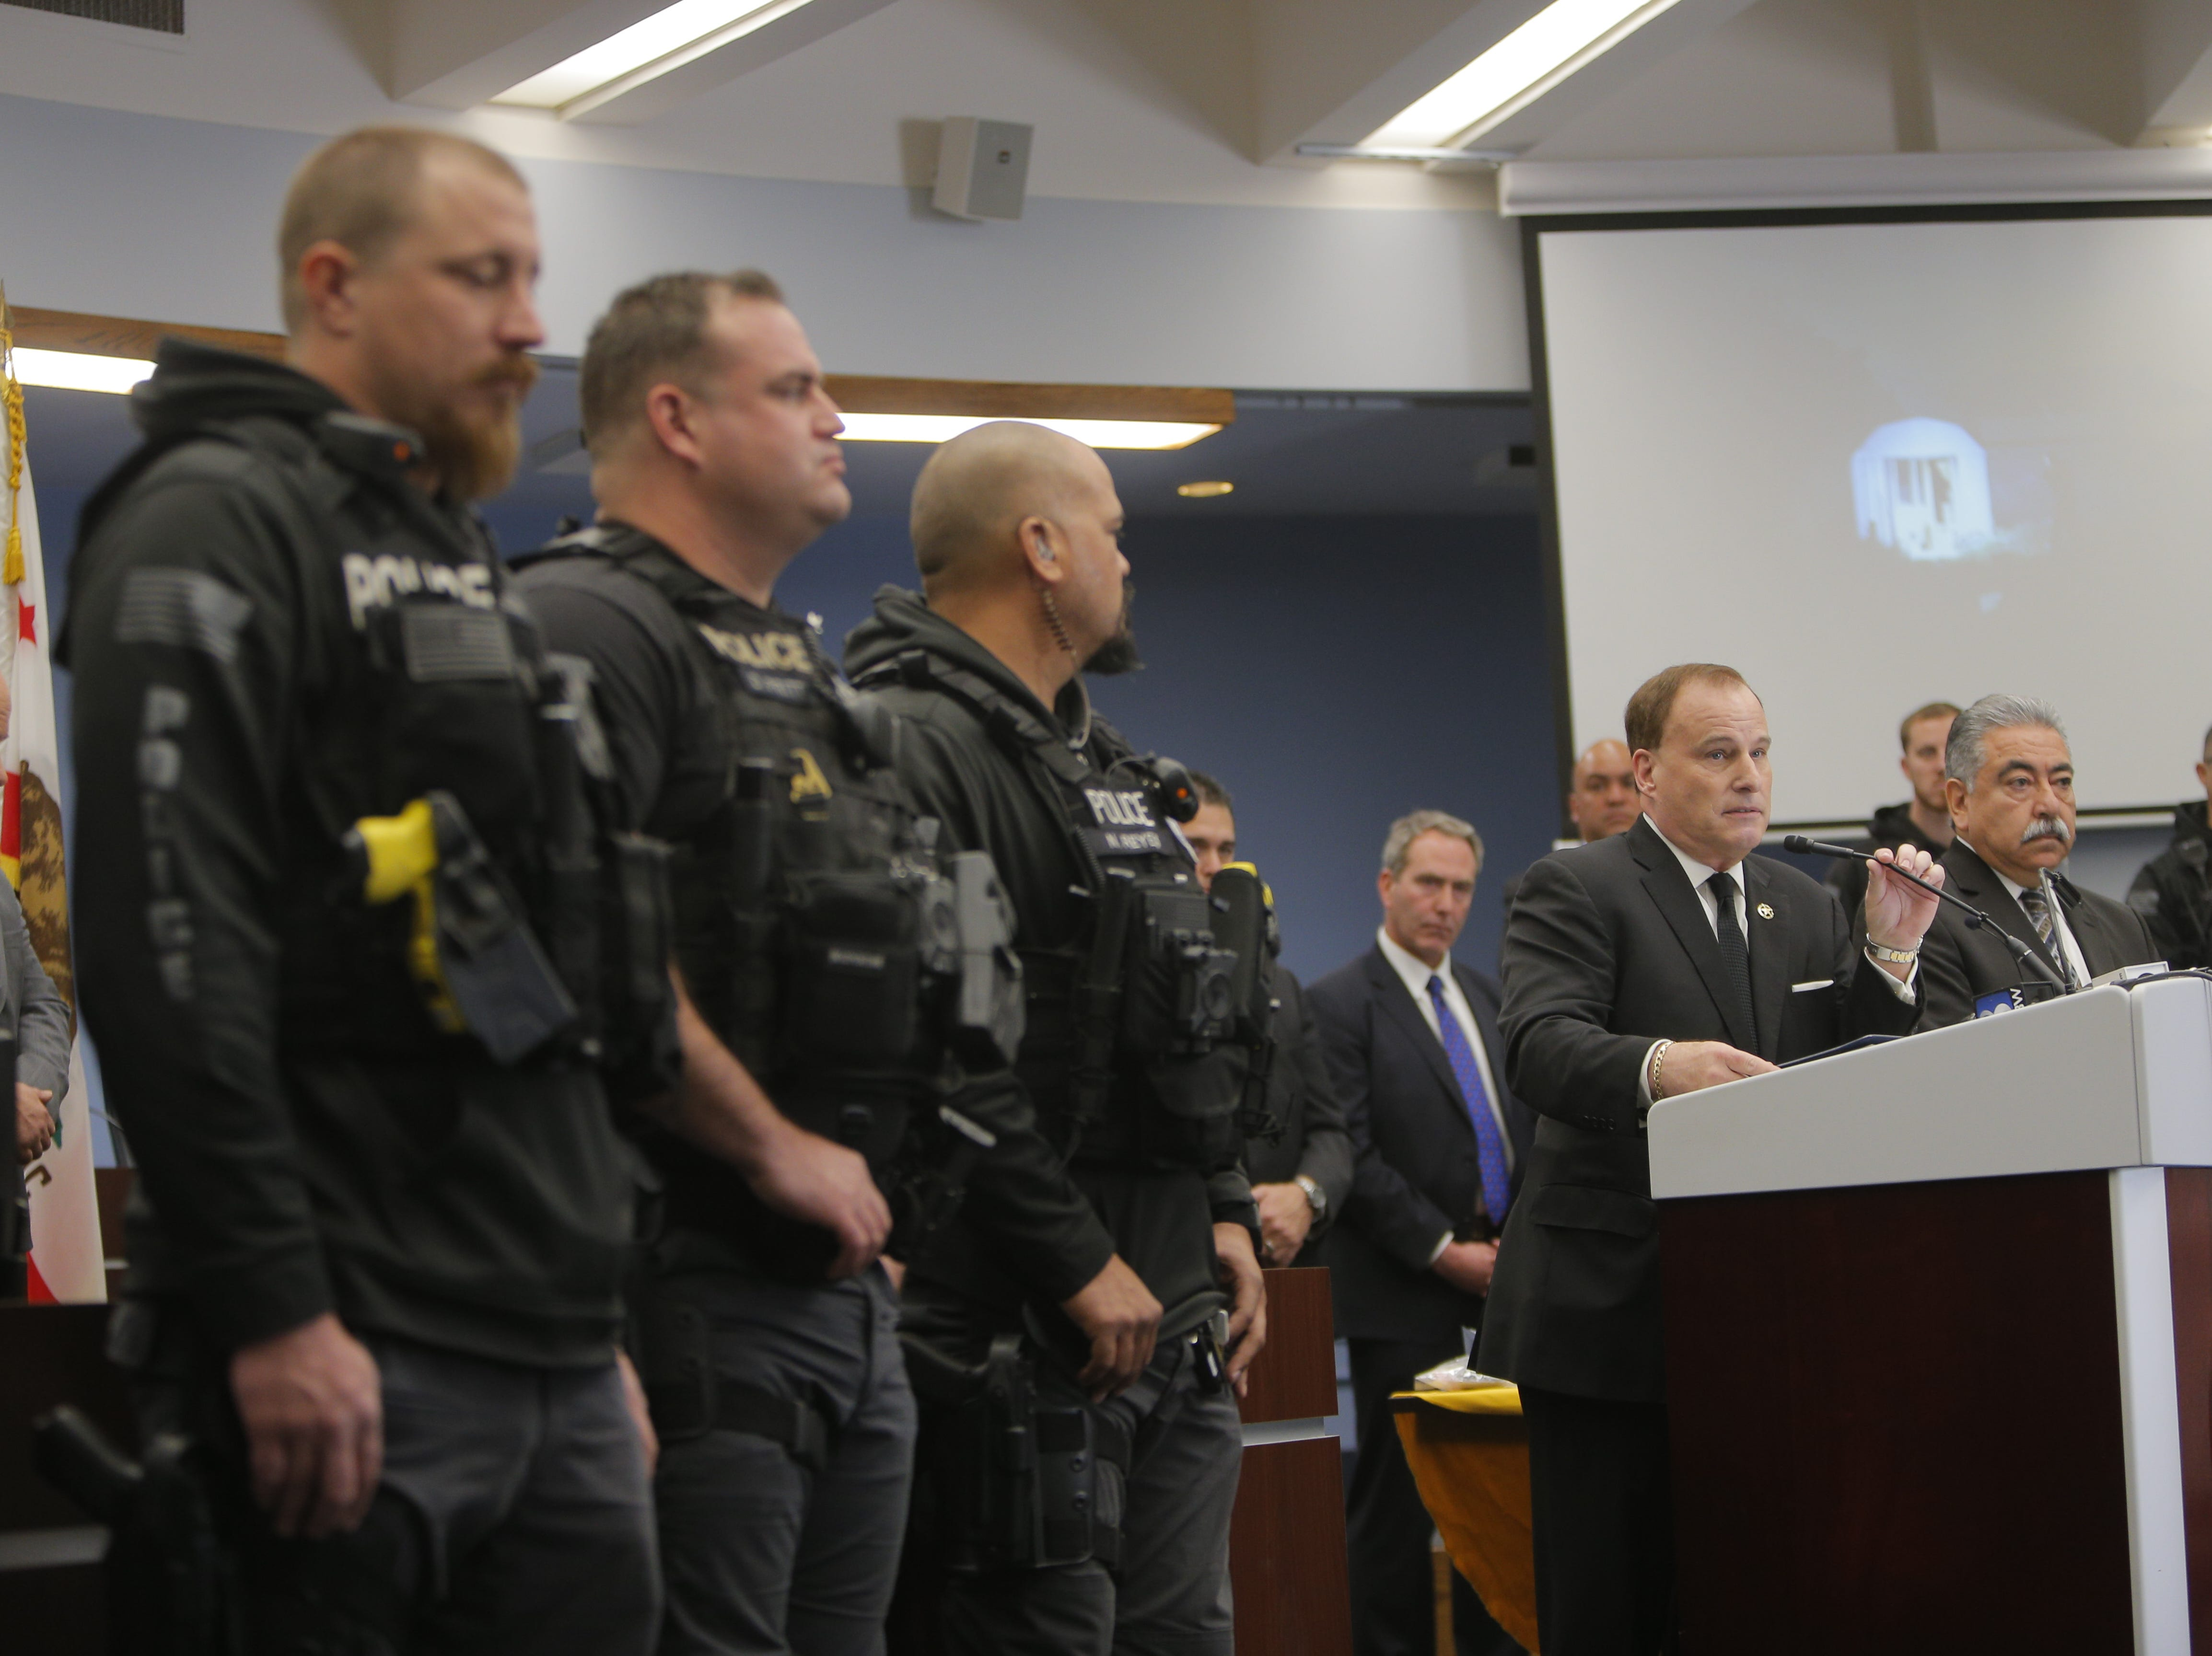 Salinas police officers listen as U.S. Marshal Donald O'Keefe addresses Thursday's press conference for the Salinas Police Department's Triple Beam Operation, a collaborative counter gang initiative conducted in partnership with local, state and federal law enforcement.